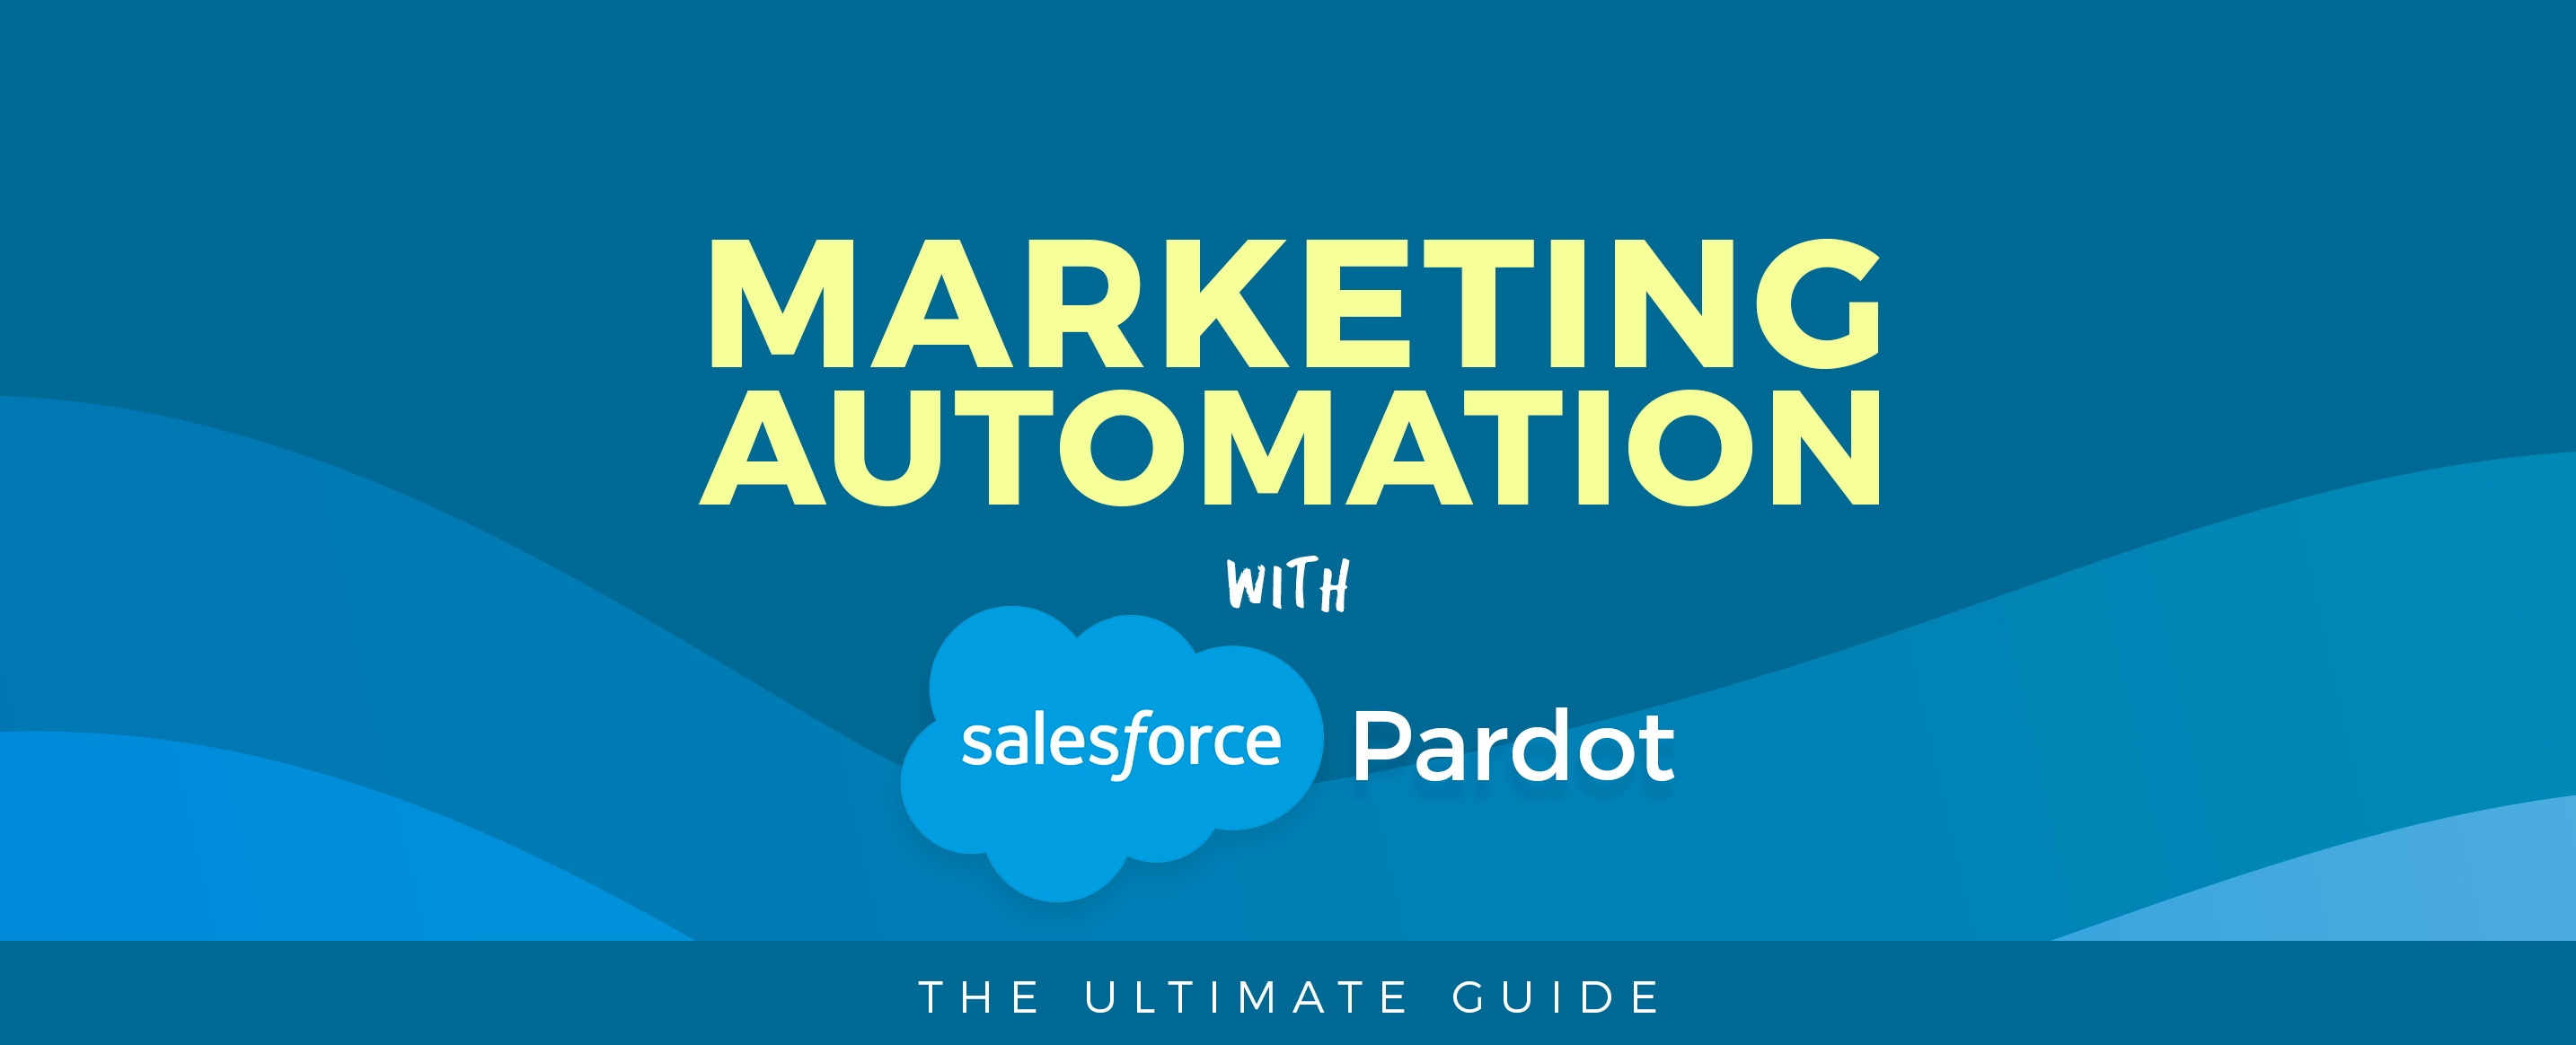 Marketing-Automation-with-Salesforce-Pardot